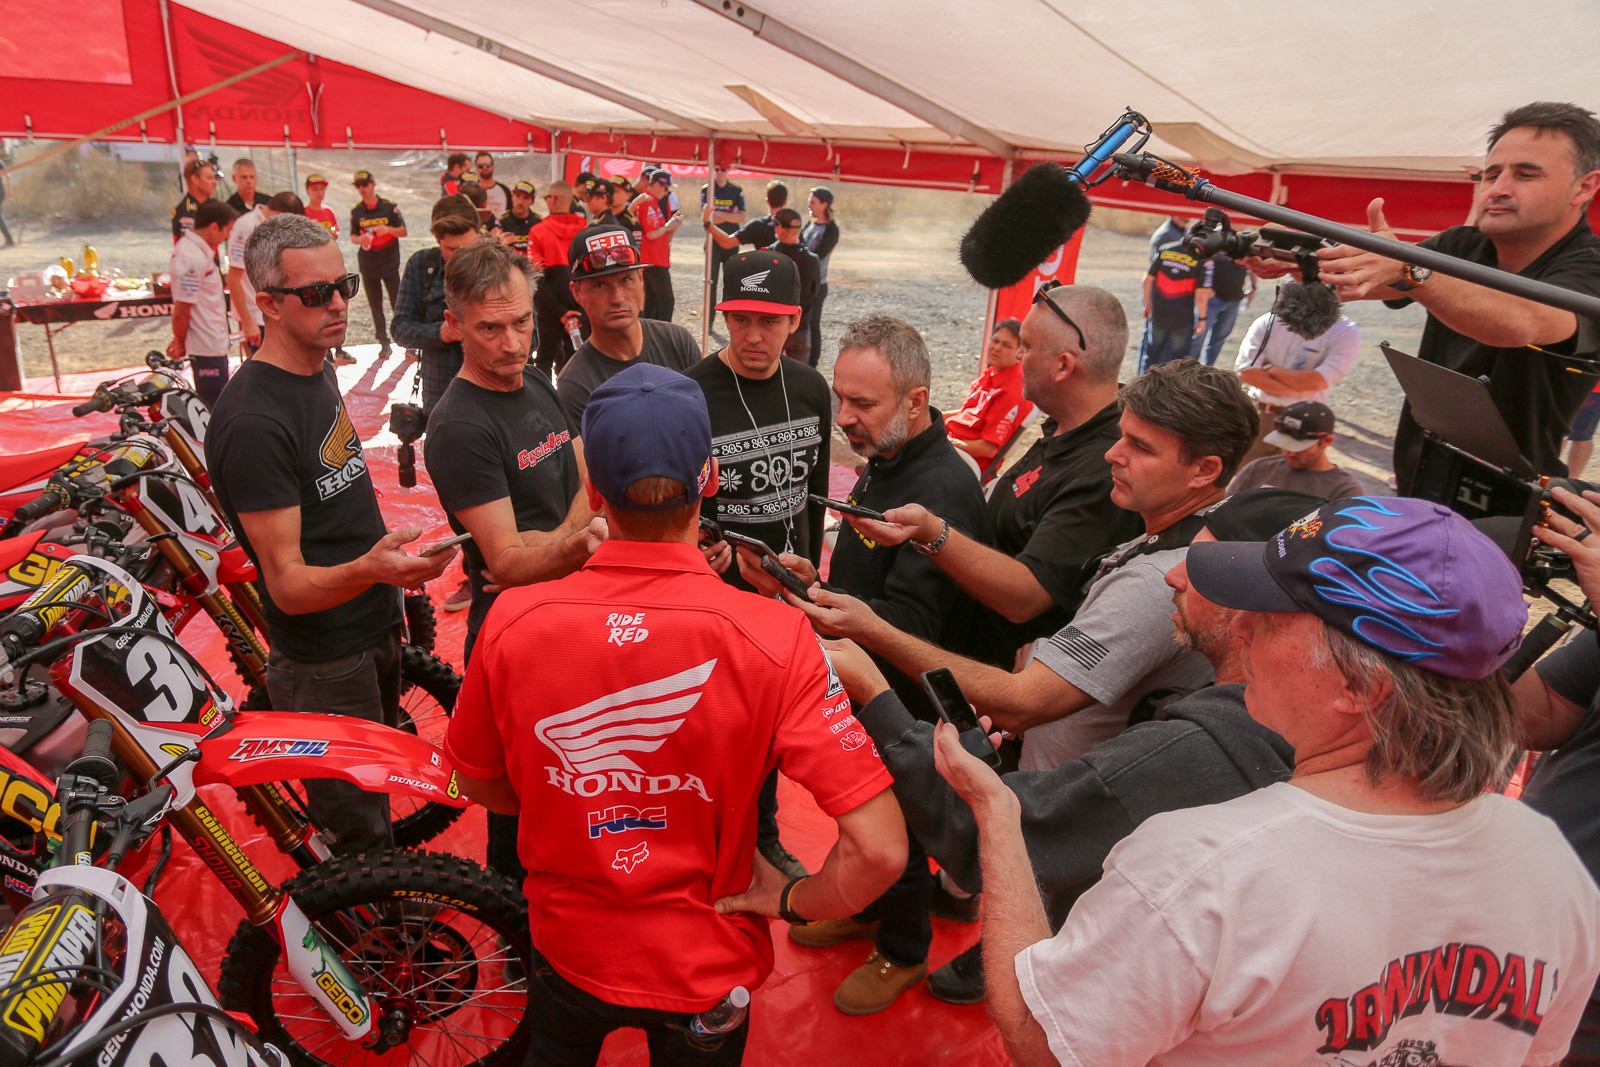 After being off the radar for so long, Ken Roczen was in high demand with the assembled media.